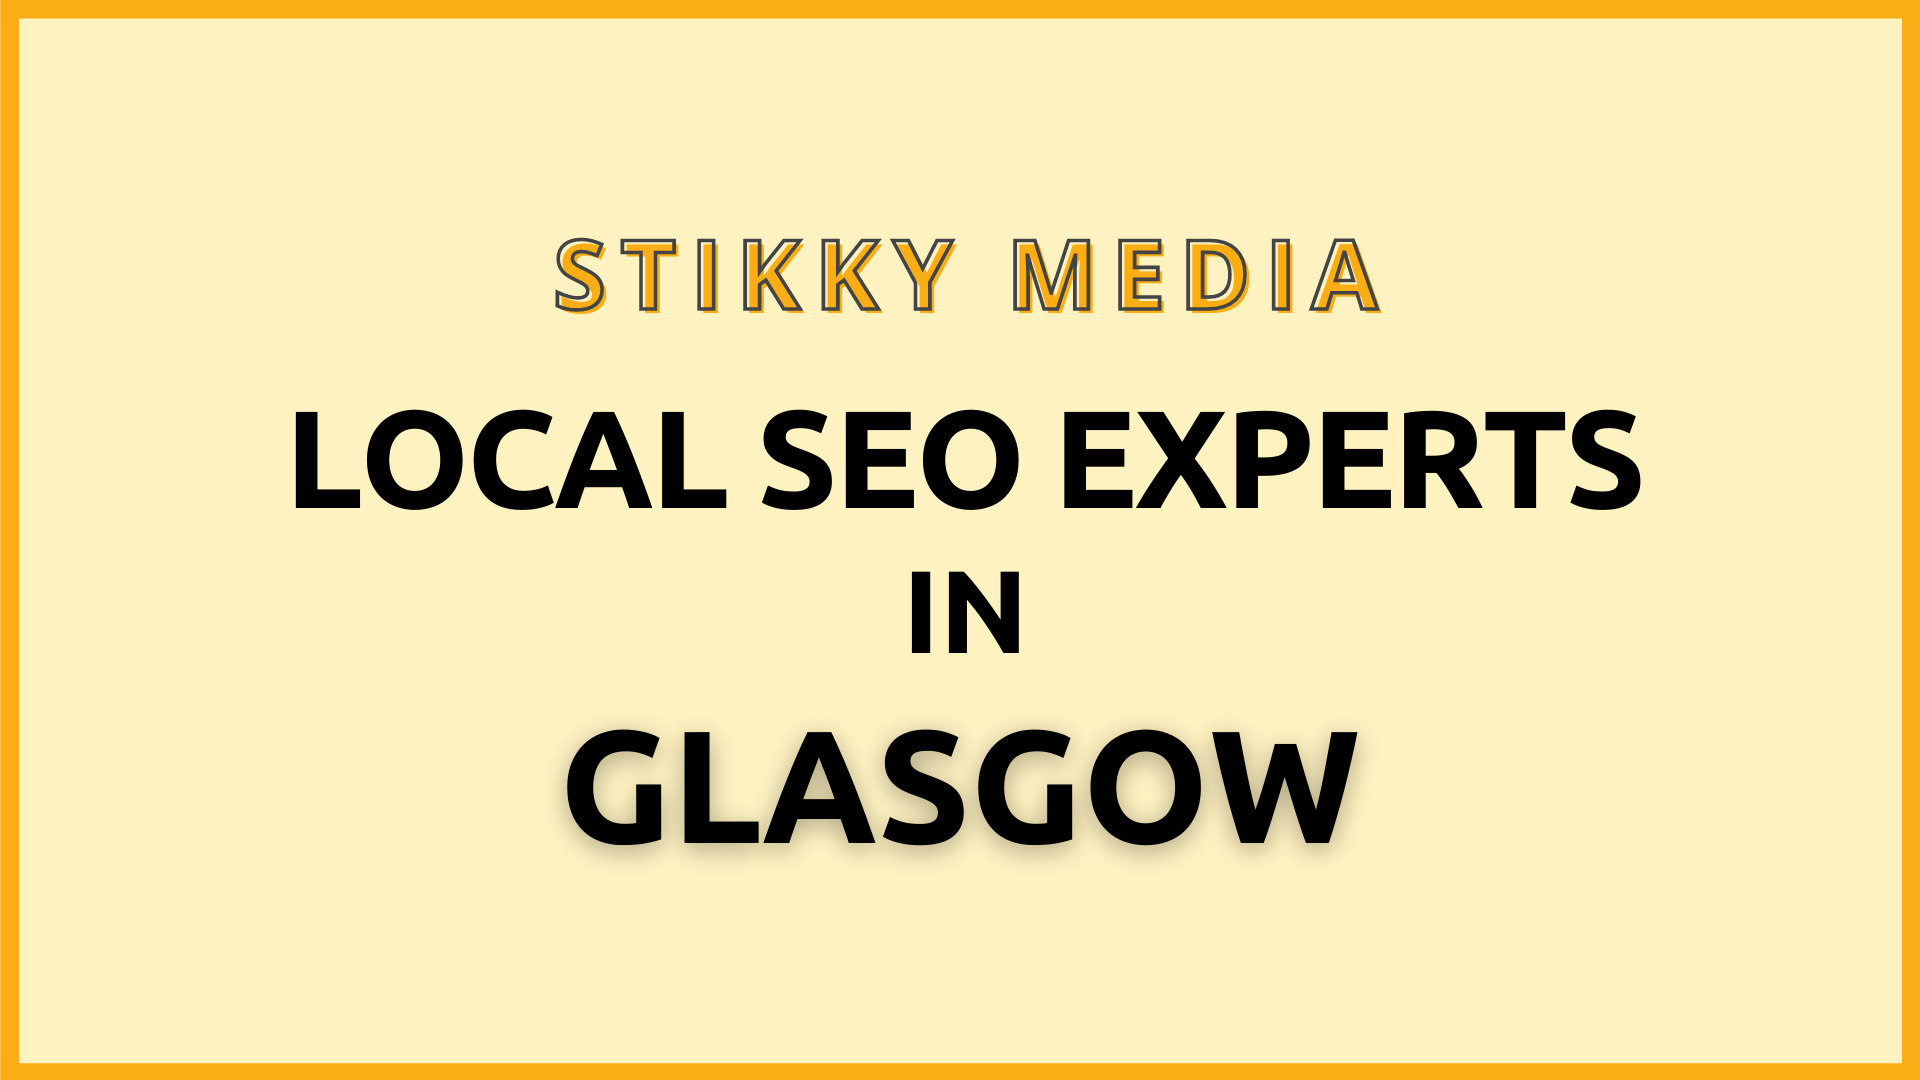 Local SEO services in Glasgow - Stikky Media